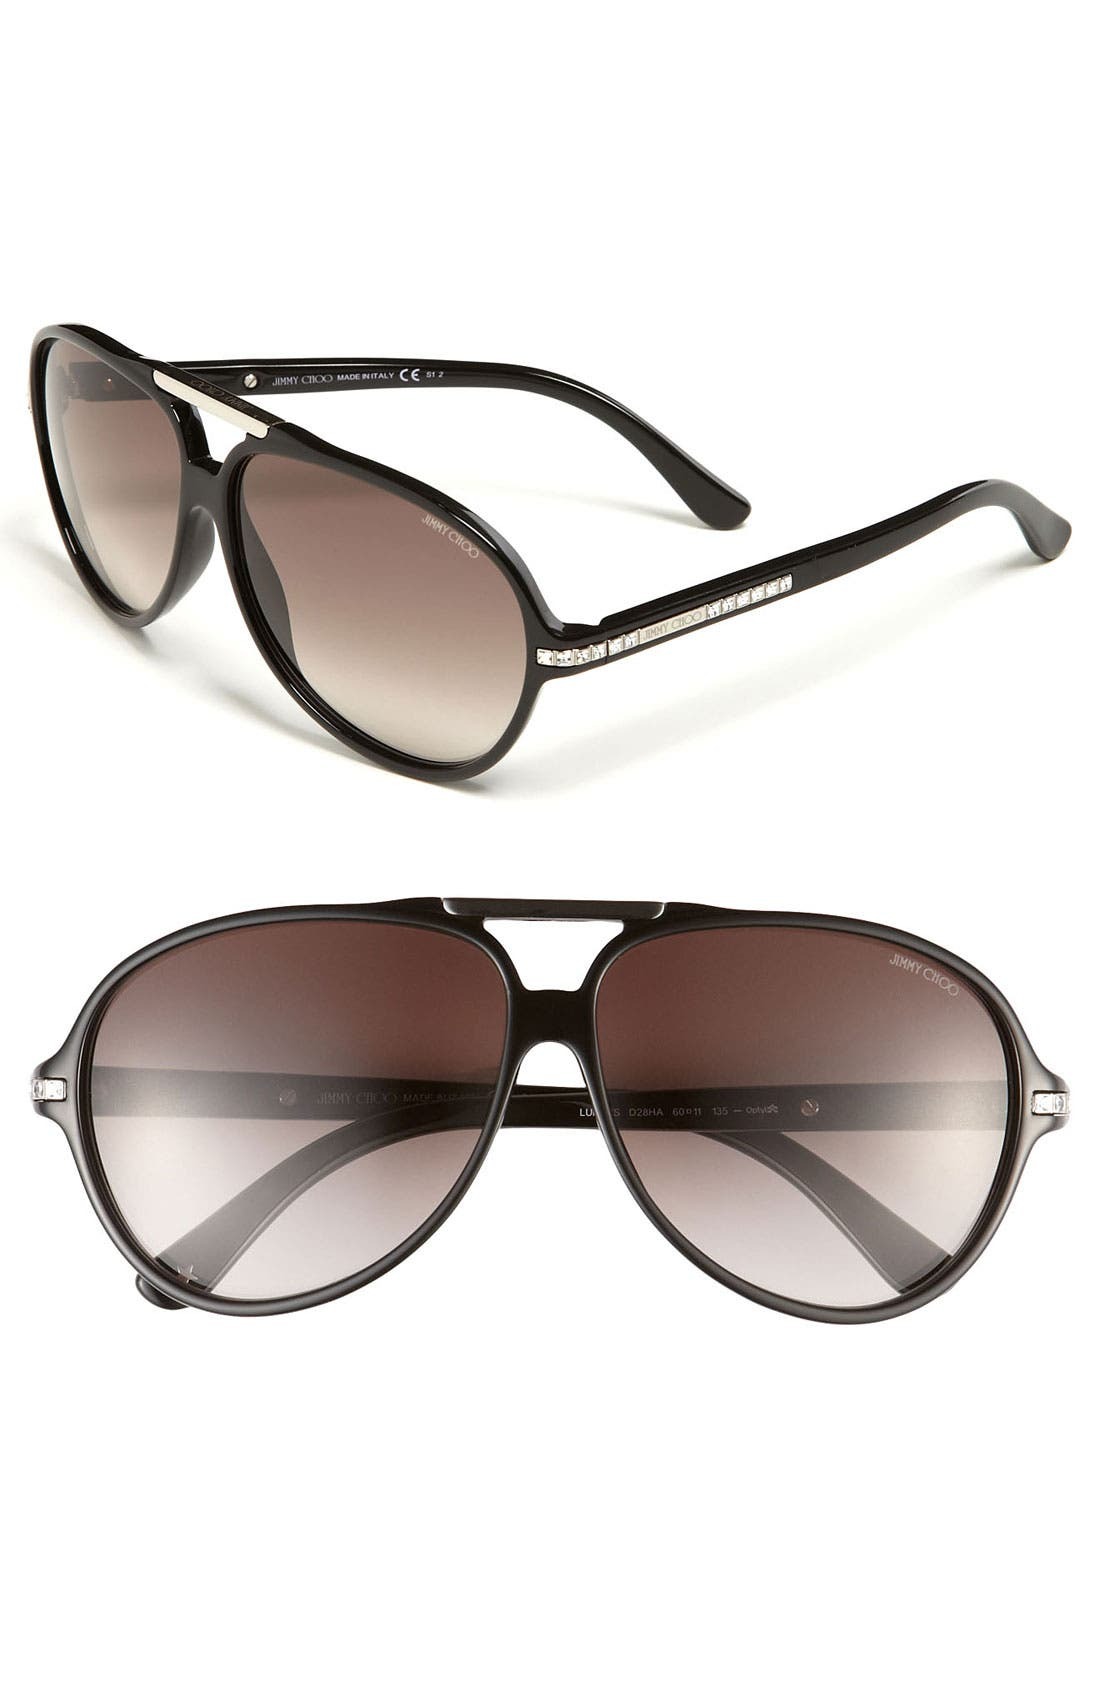 Main Image - Jimmy Choo Aviator Sunglasses